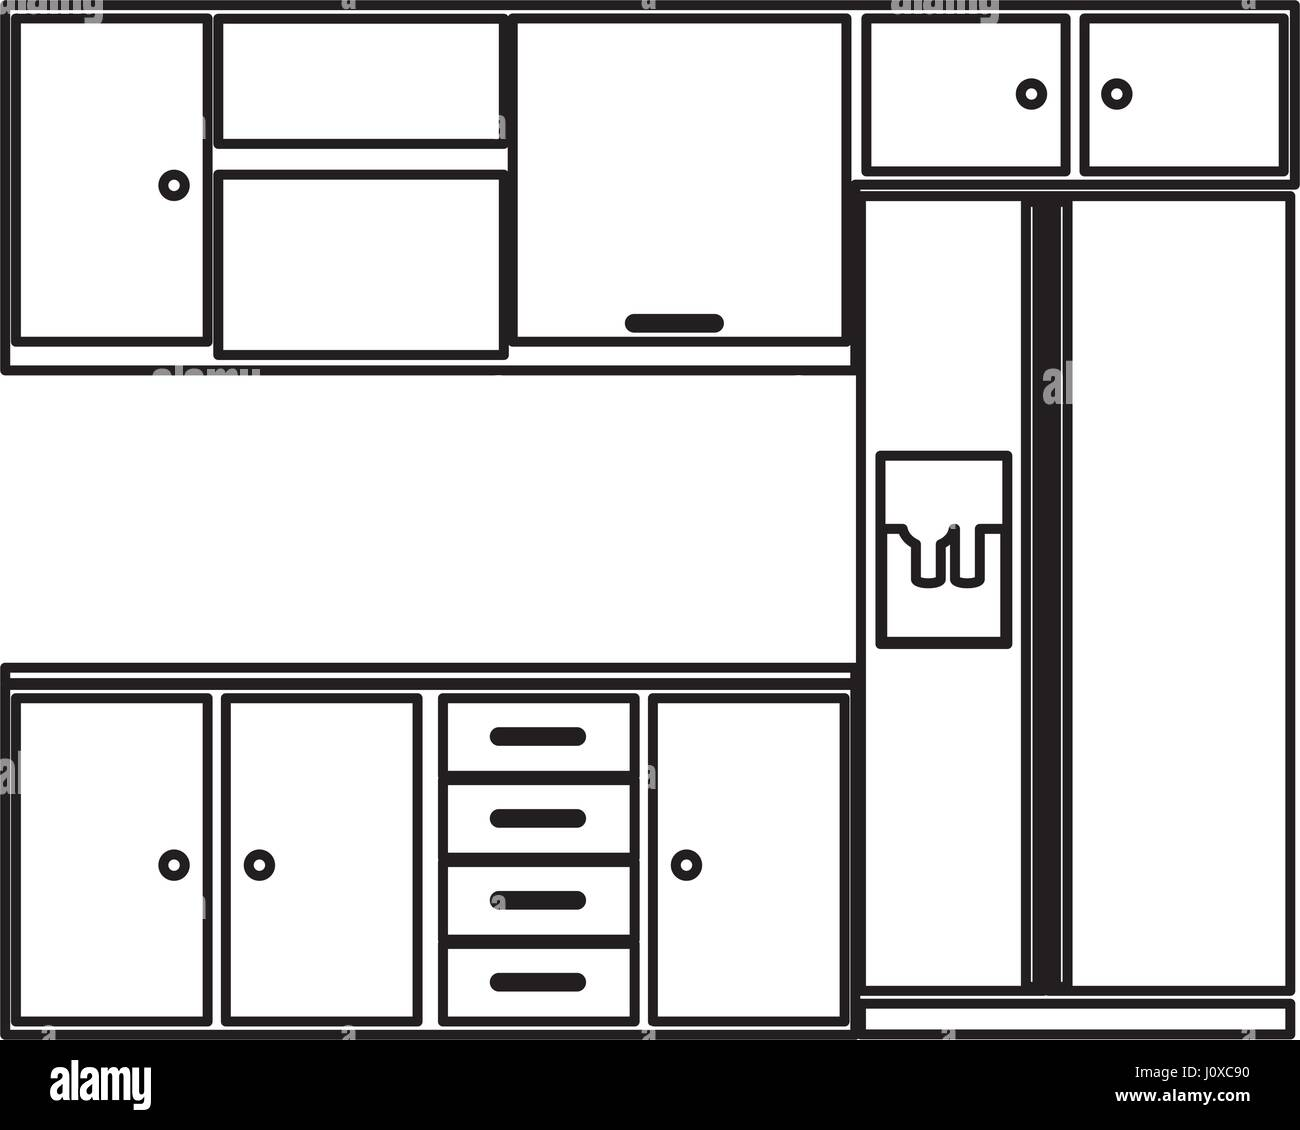 Kitchen Furniture Silhouette: Sketch Silhouette Kitchen Interior With Cabinets And